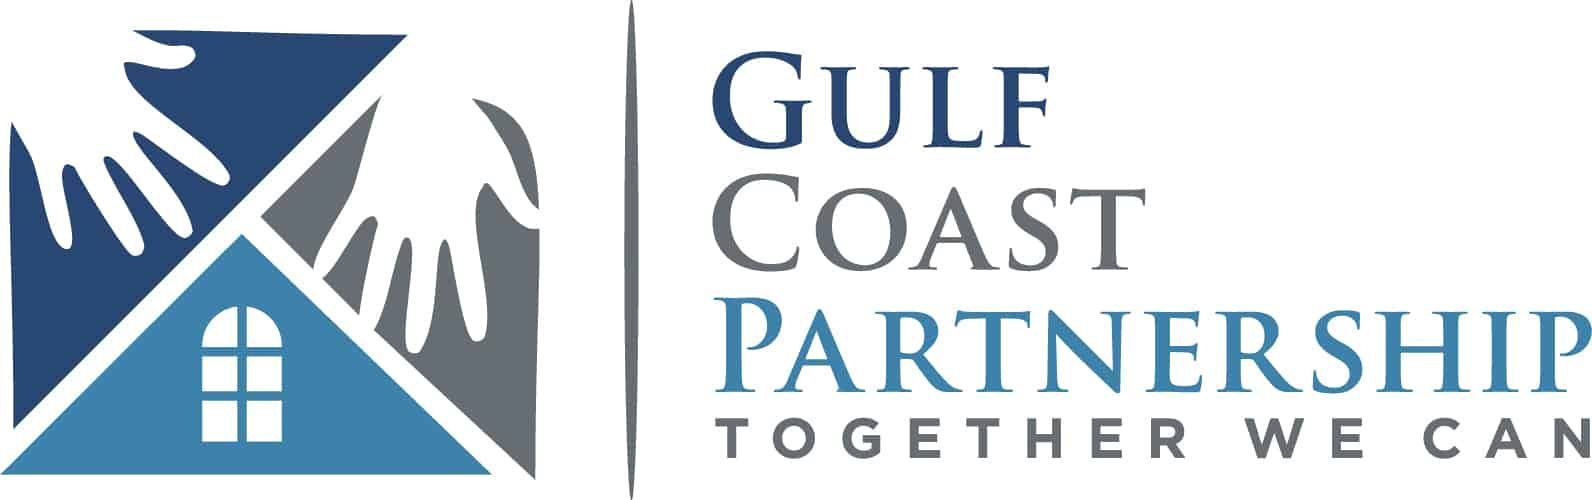 Gulf Coast Partnership